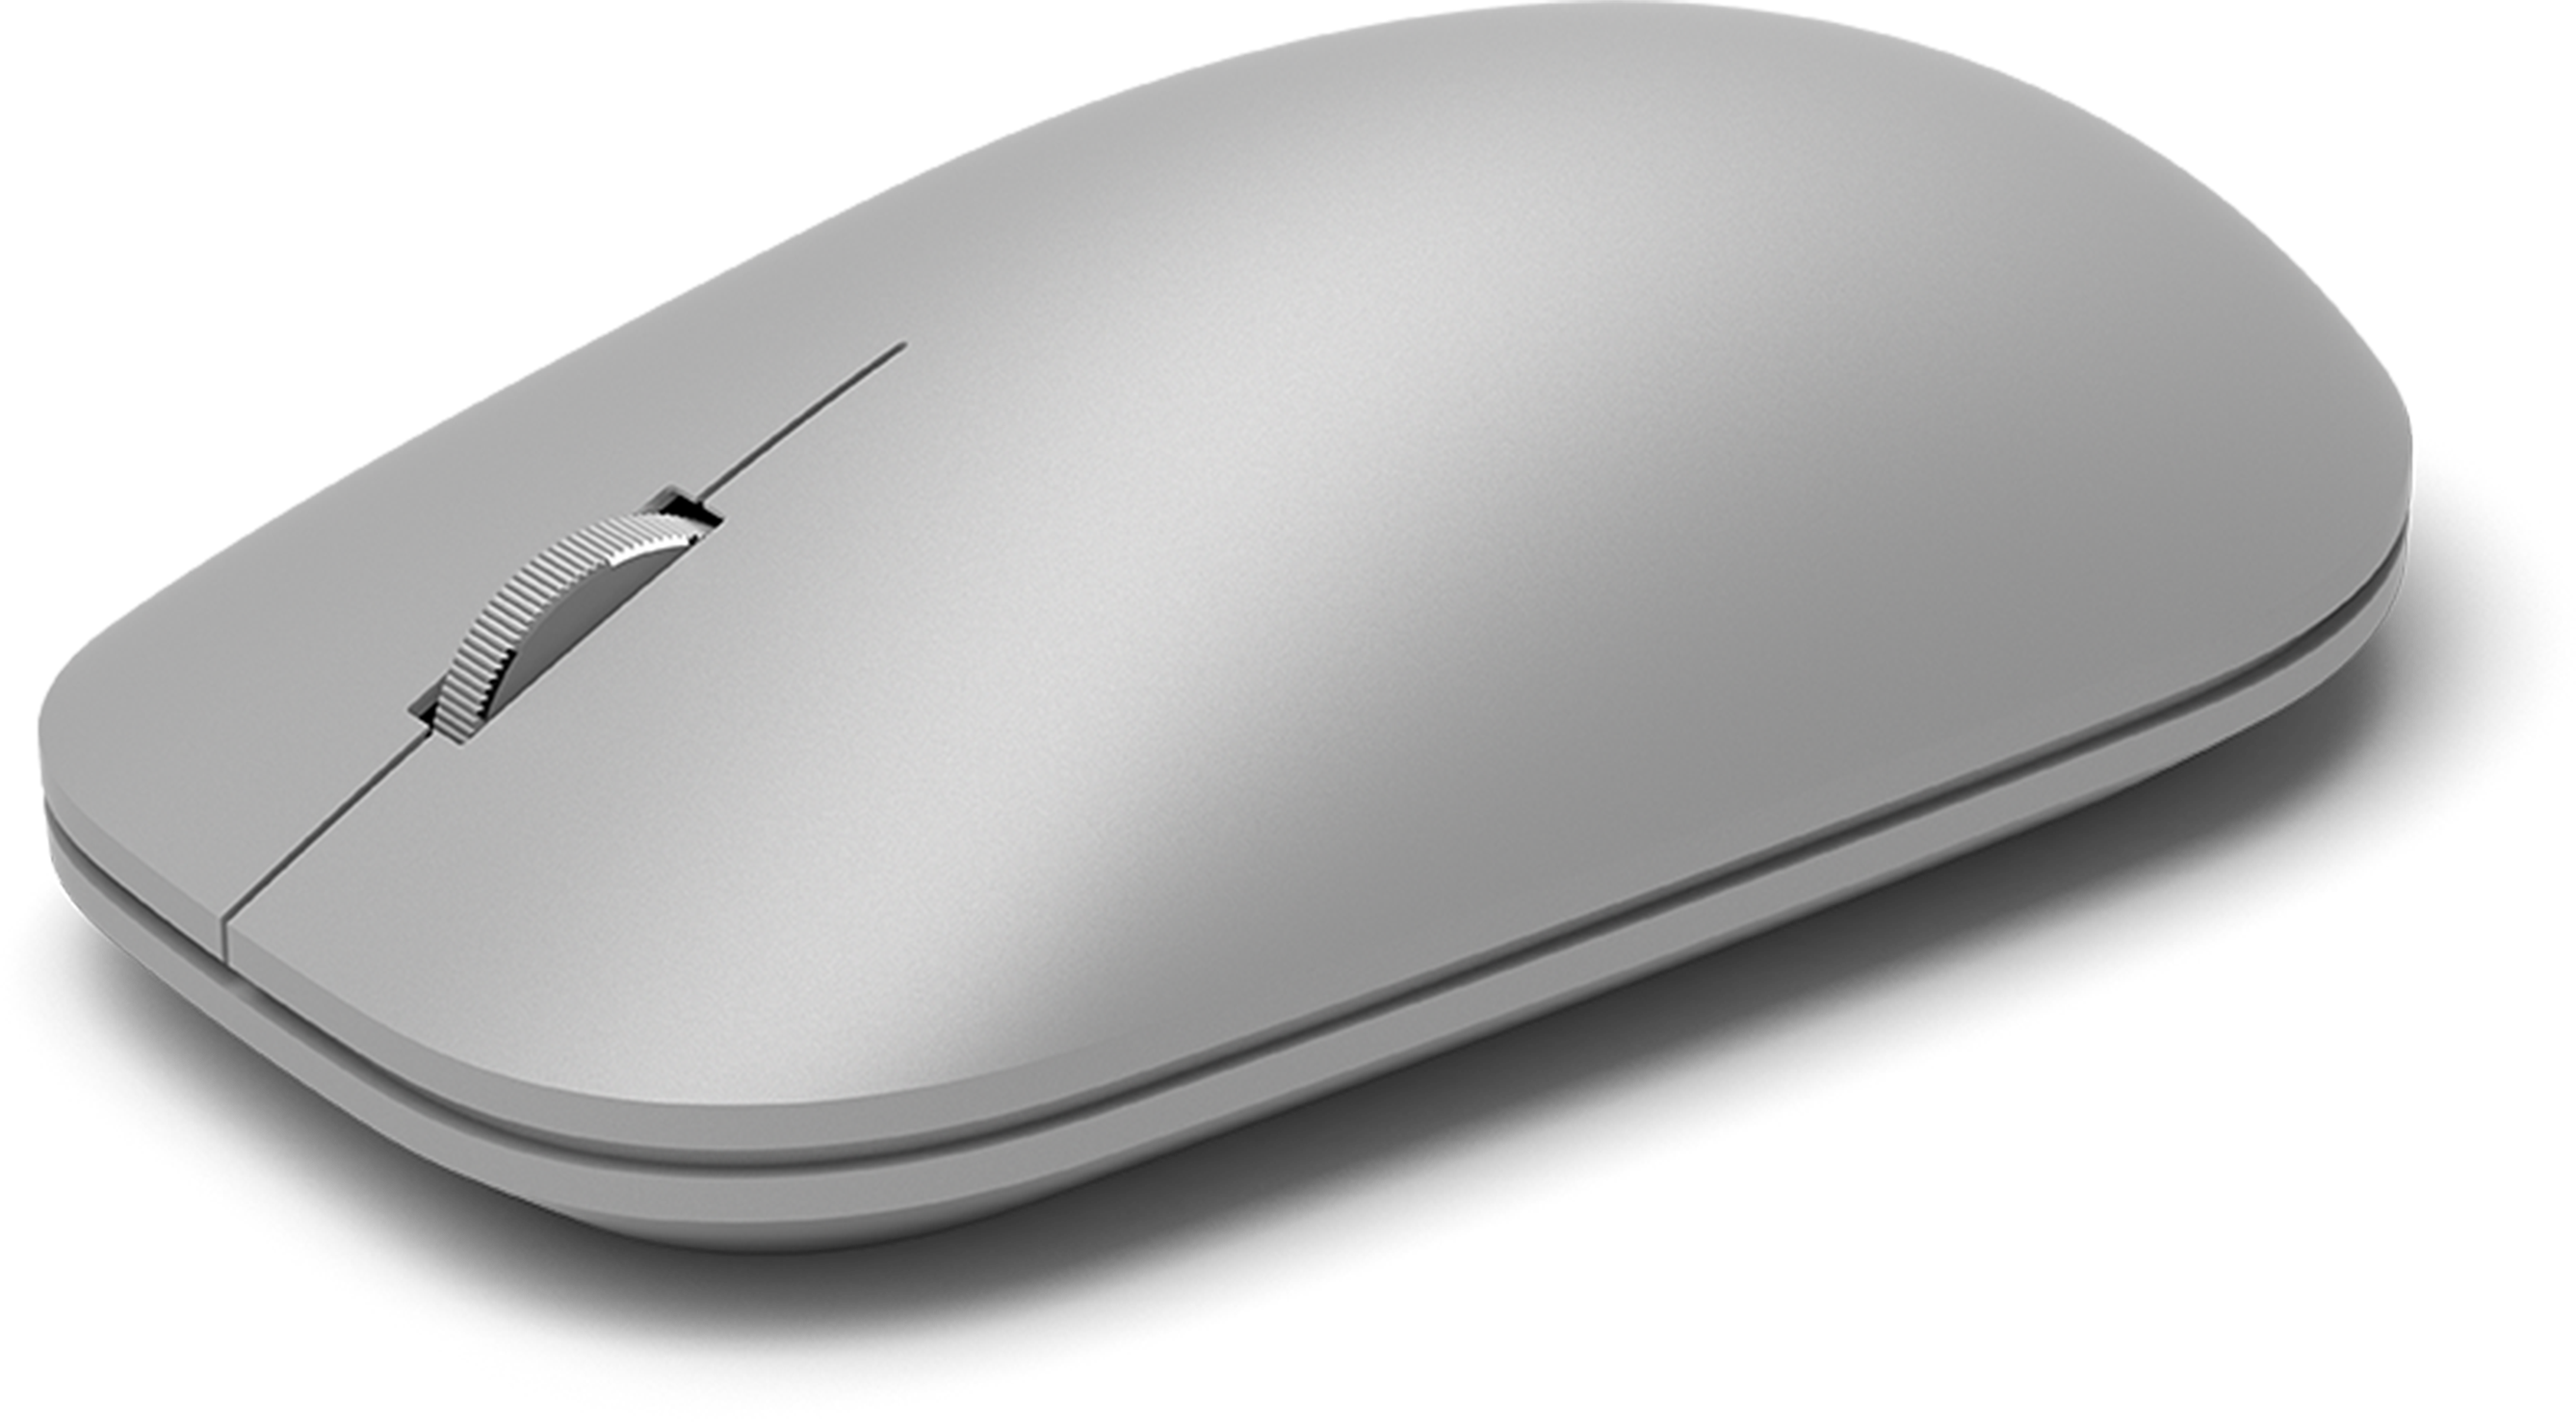 Image of Surface Mouse